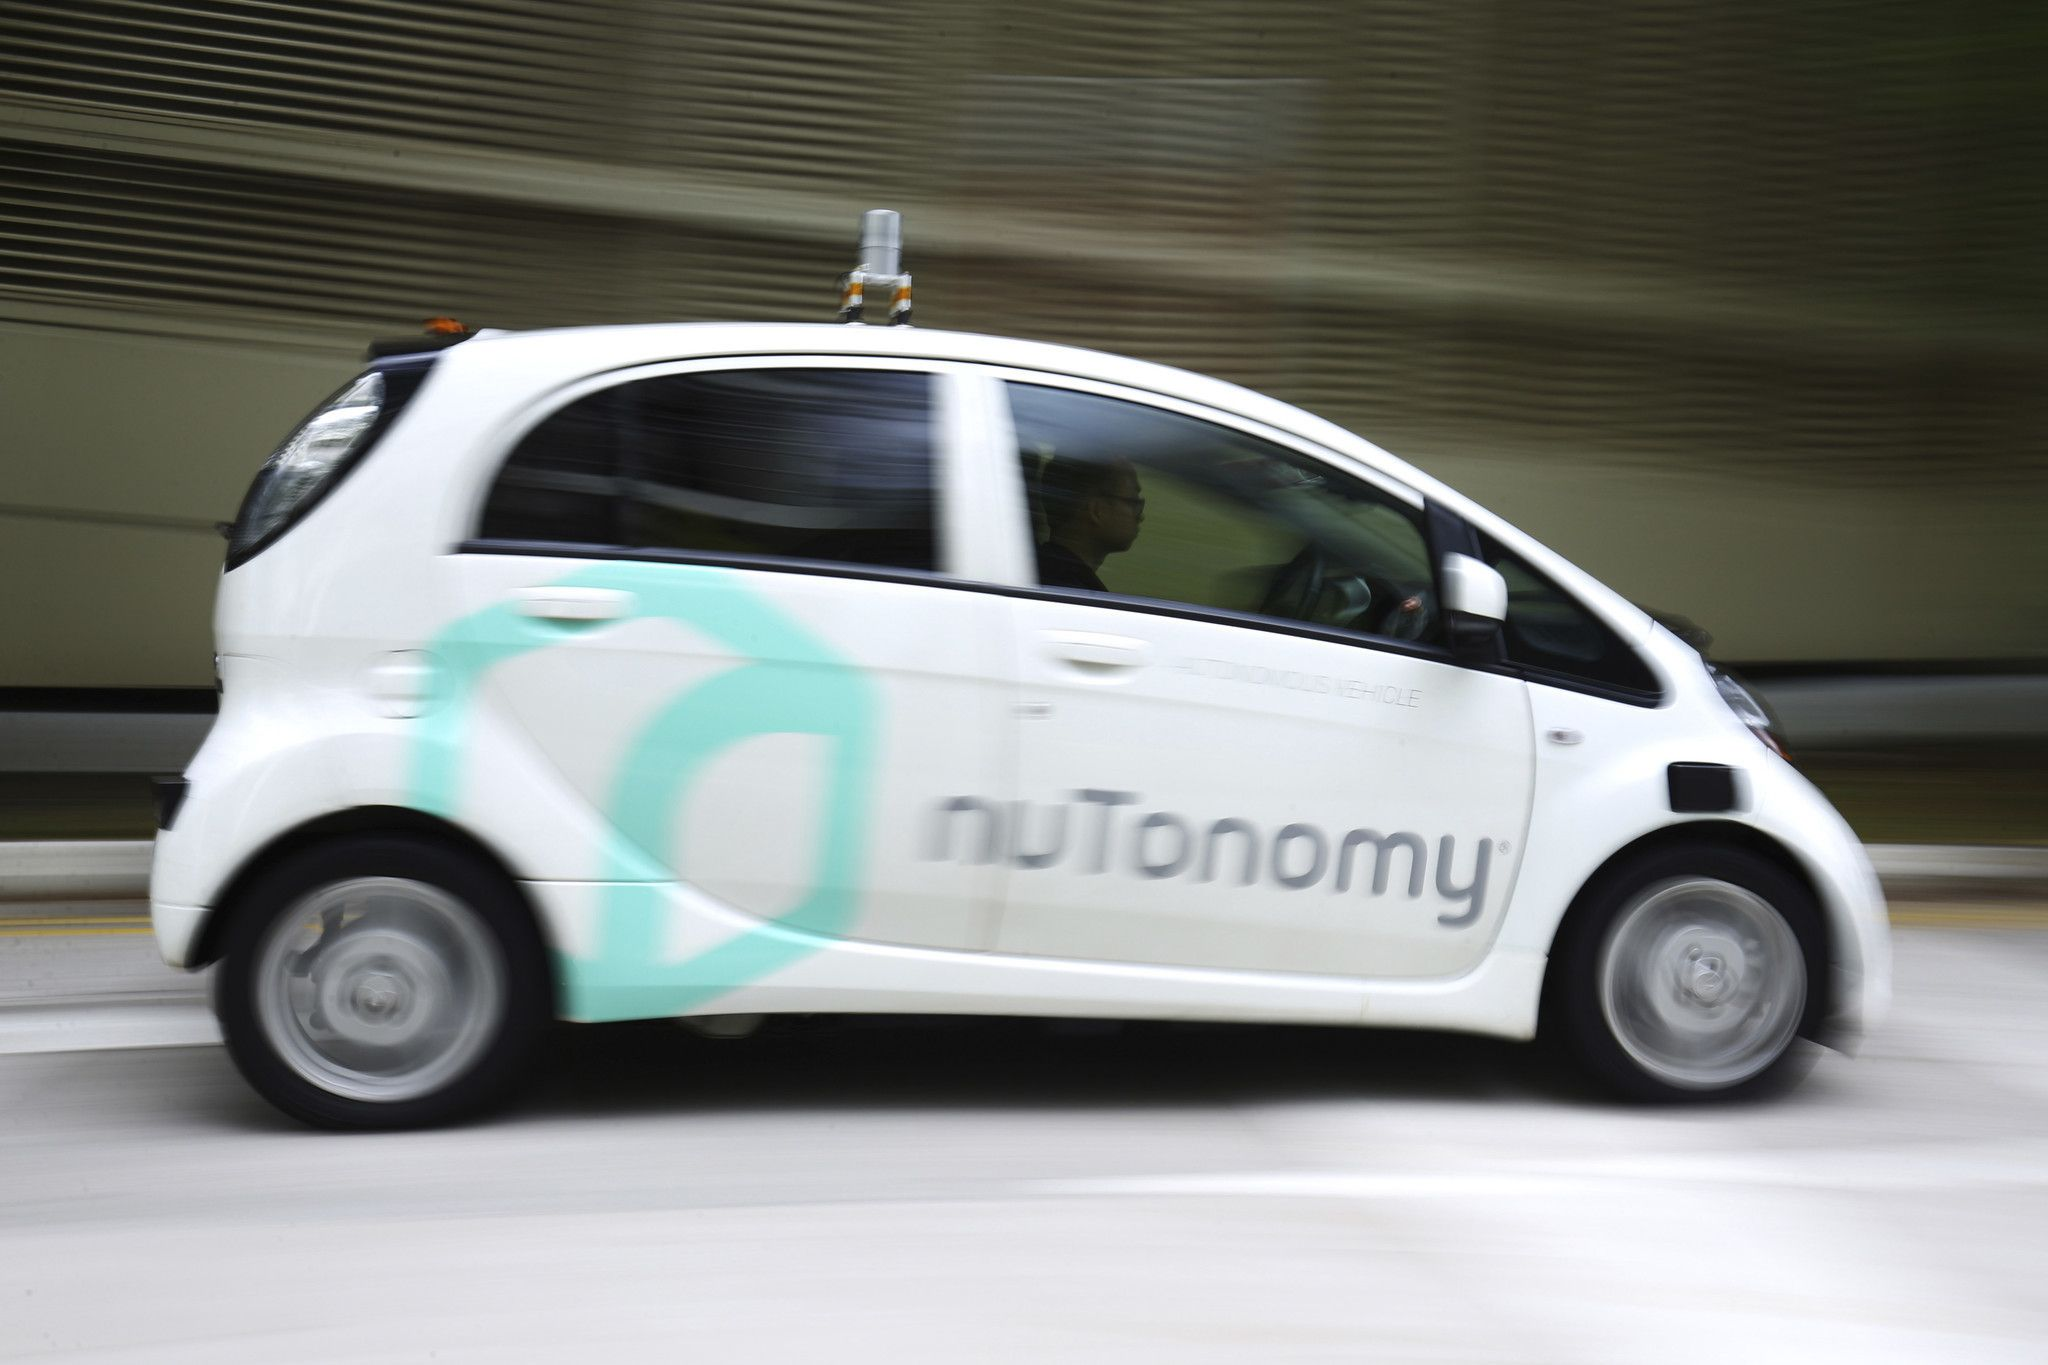 World's first self-driving taxis debut in Singapore - LA Times